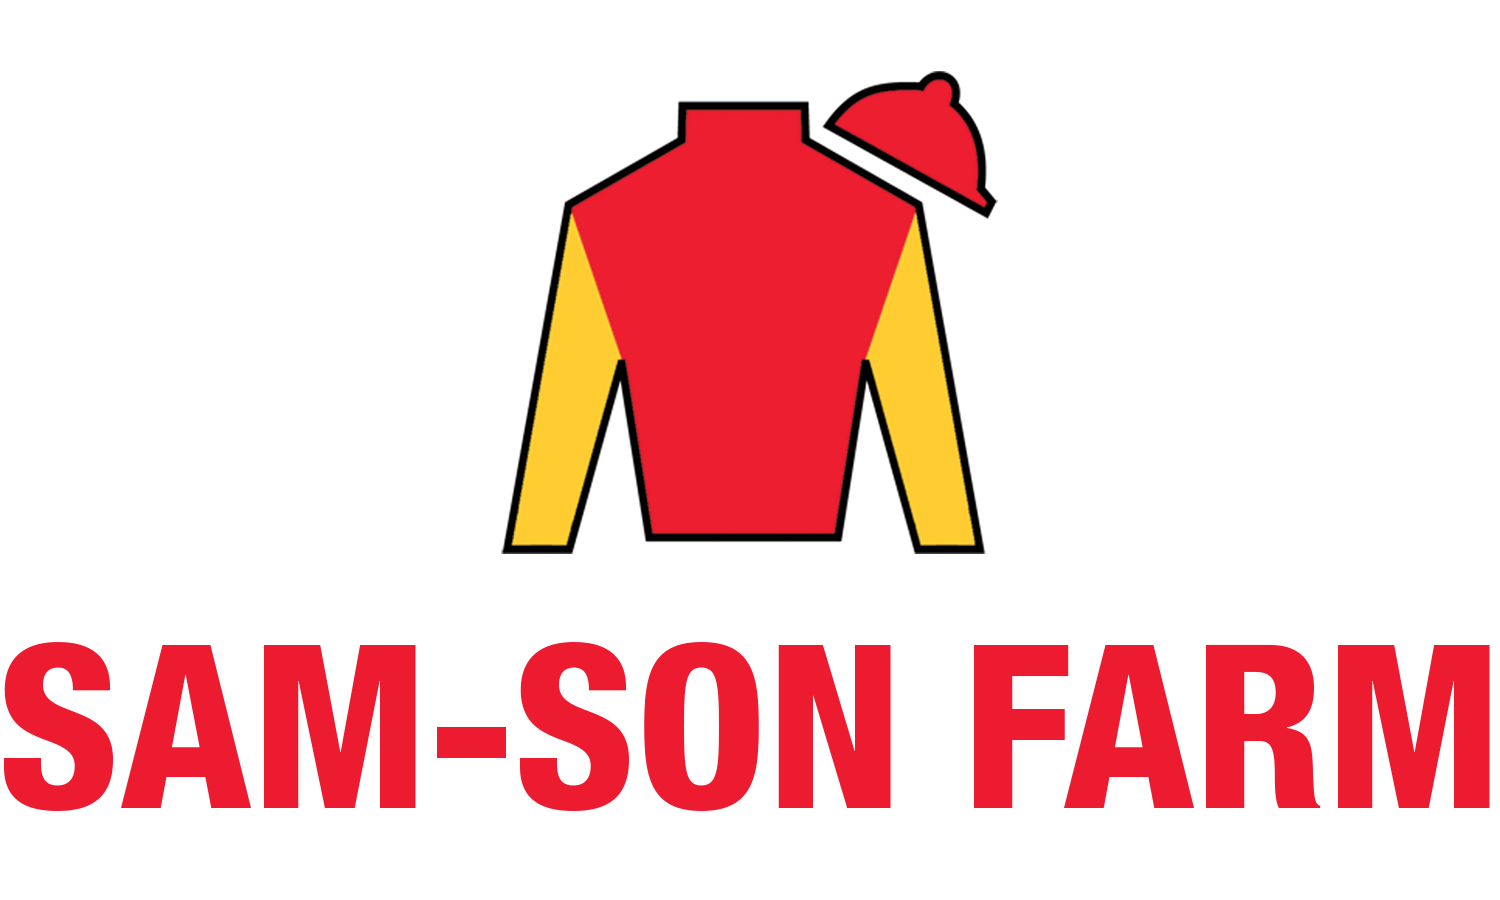 Sam-Son Farm